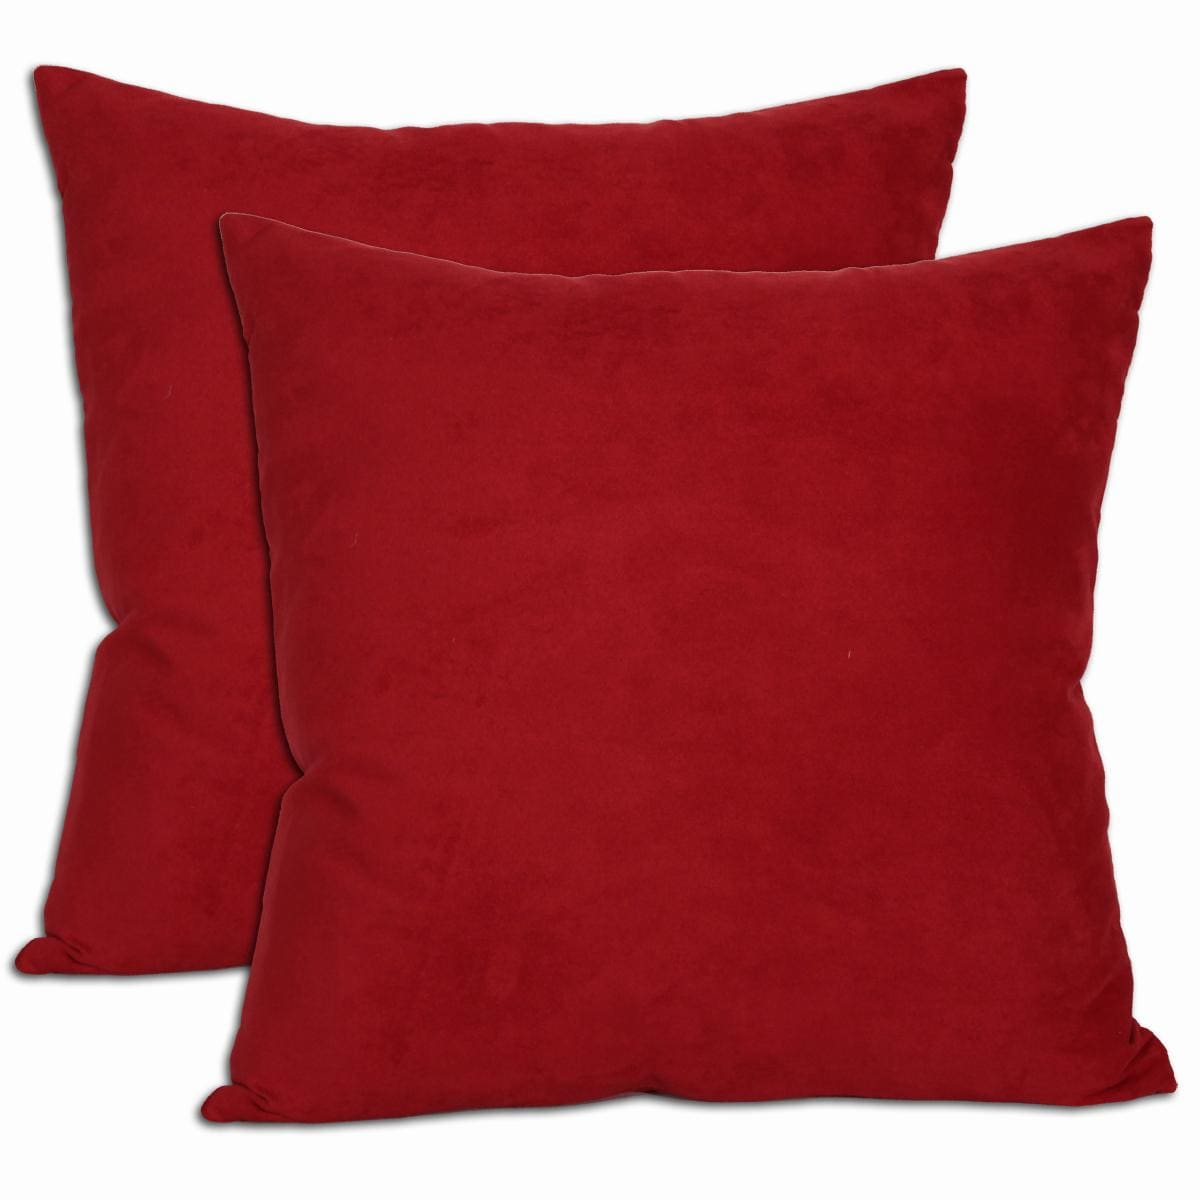 RED Microsuede Throw Pillows SET OF 2 eBay